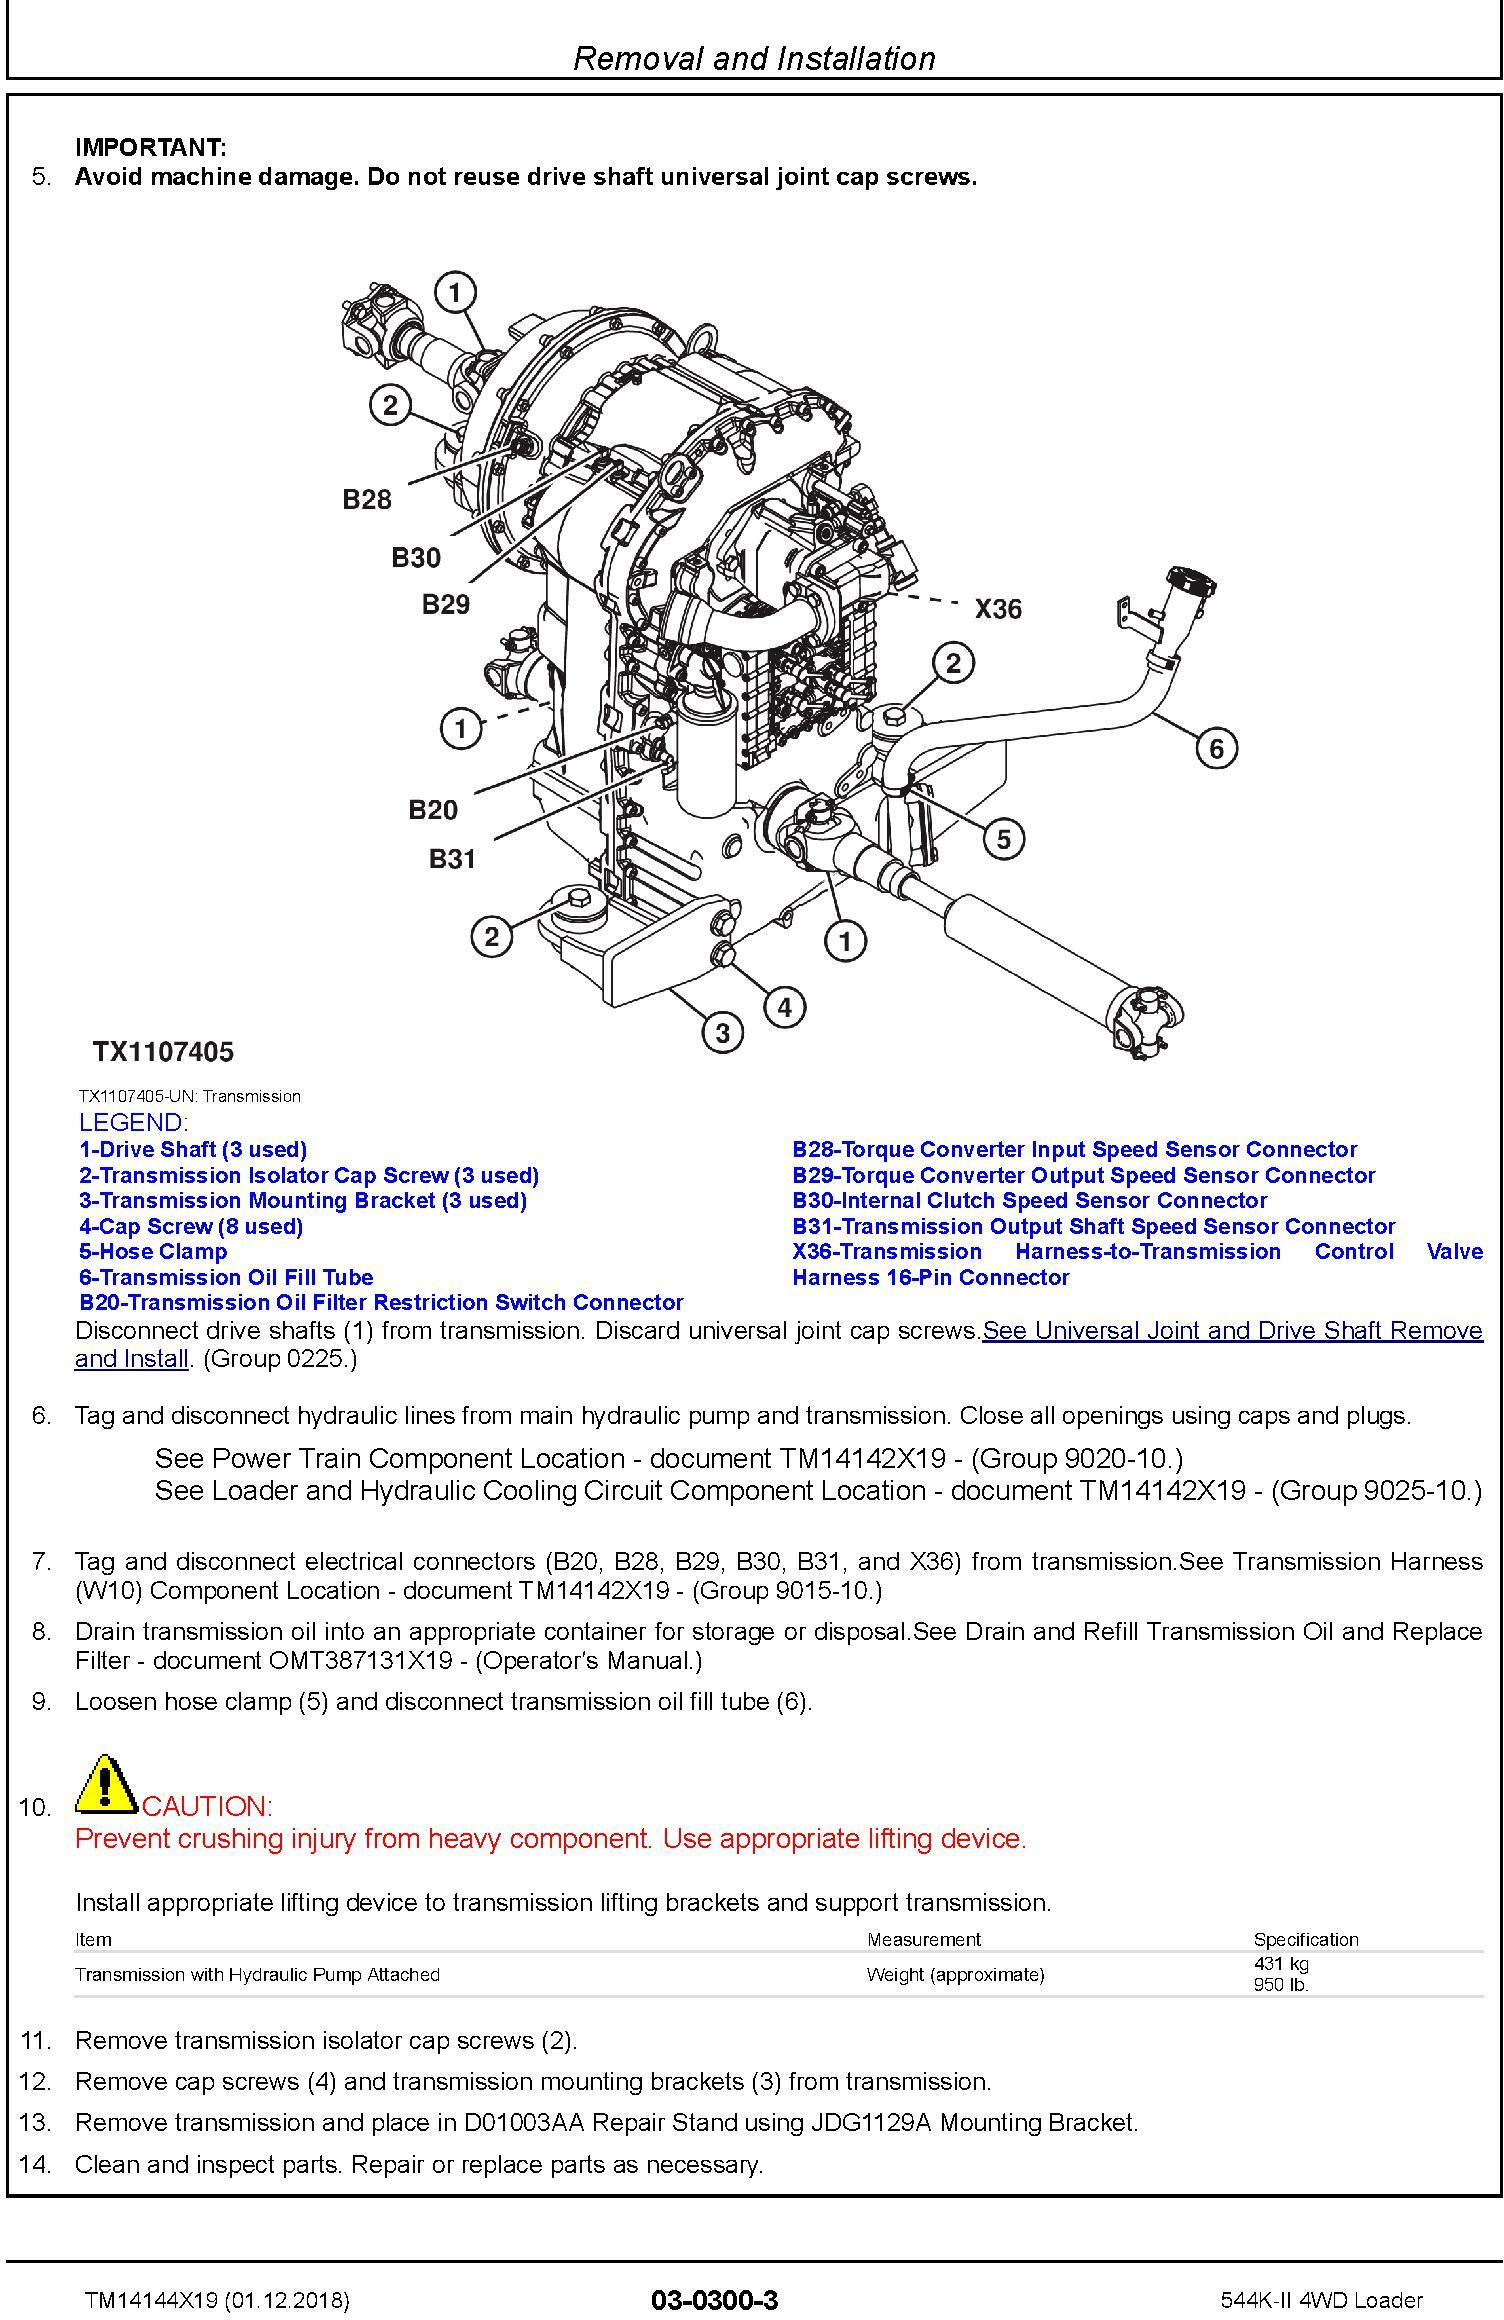 John Deere 544K-II (SN. F677549-) 4WD Loader Repair Technical Service Manual (TM14144X19) - 1